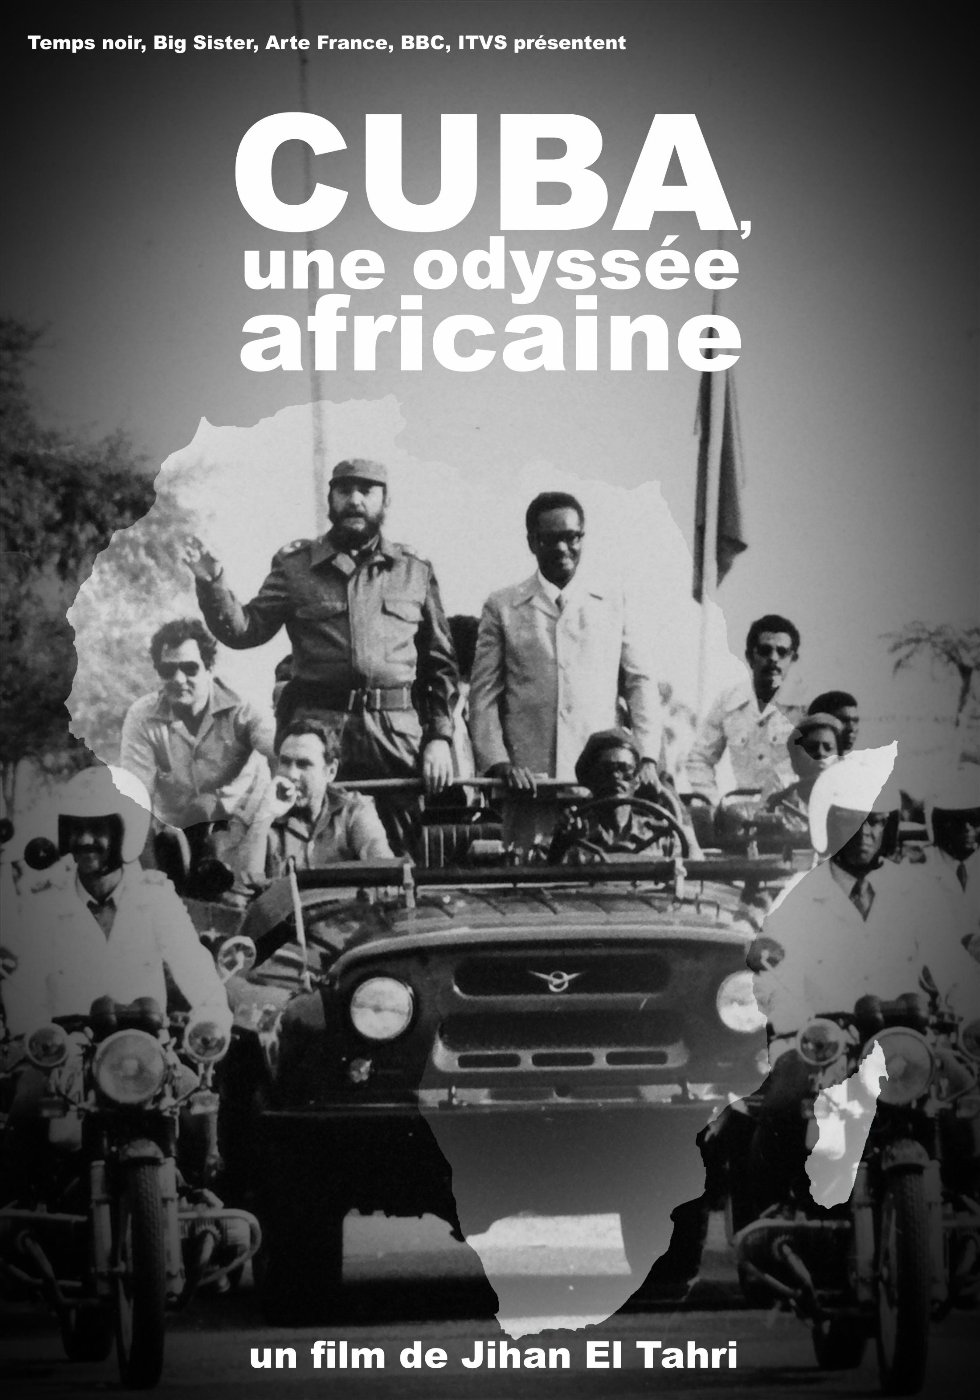 Cuba - Une odyssee africaine